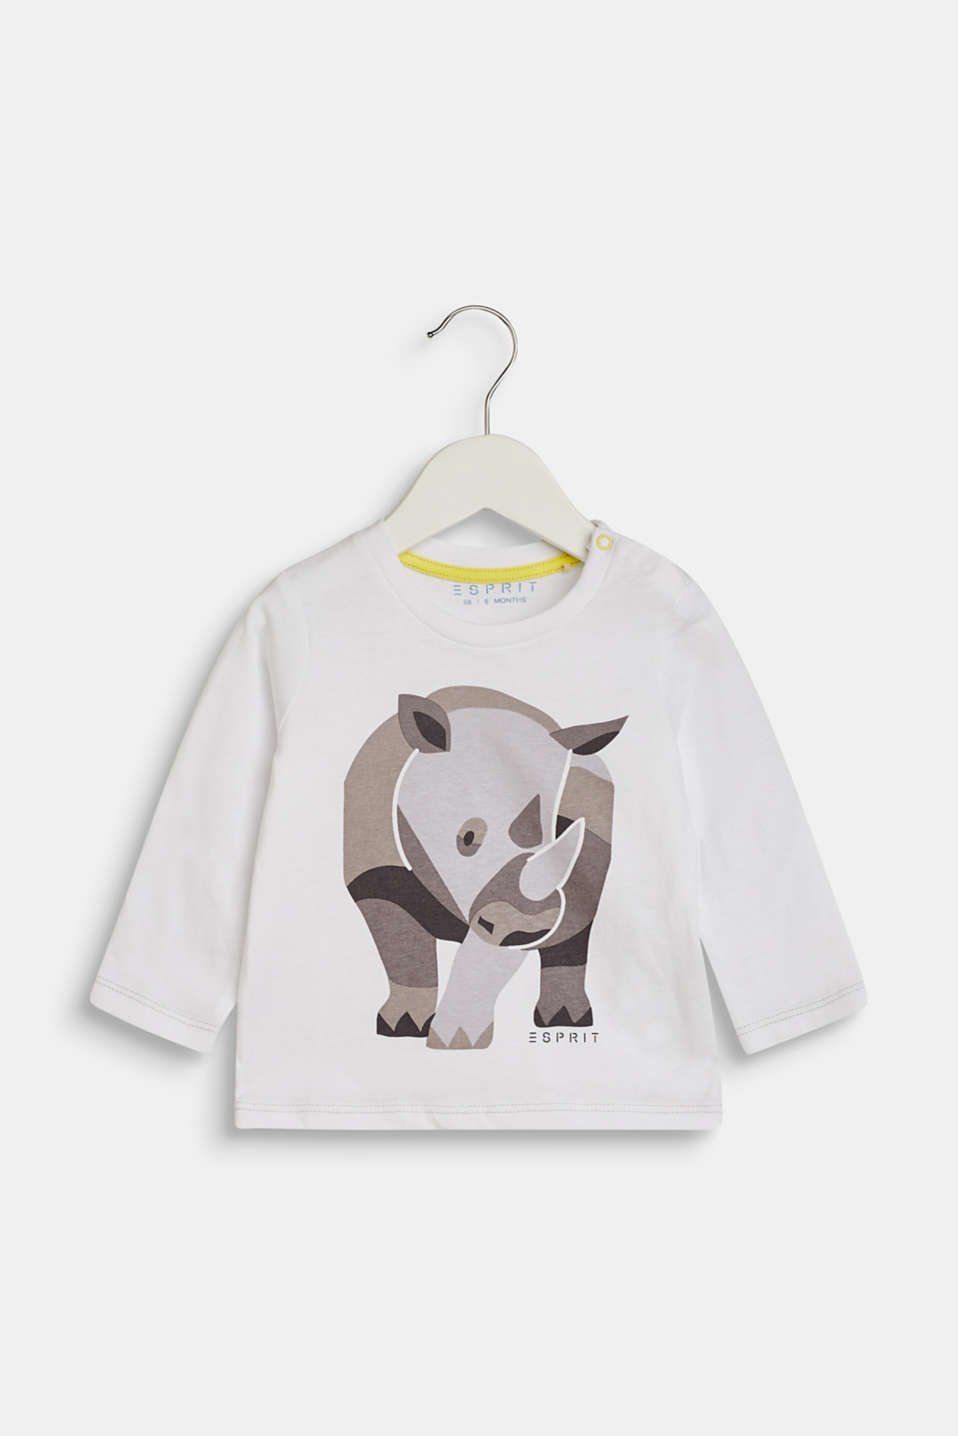 Esprit - Long sleeve top with a rhino print, 100% cotton